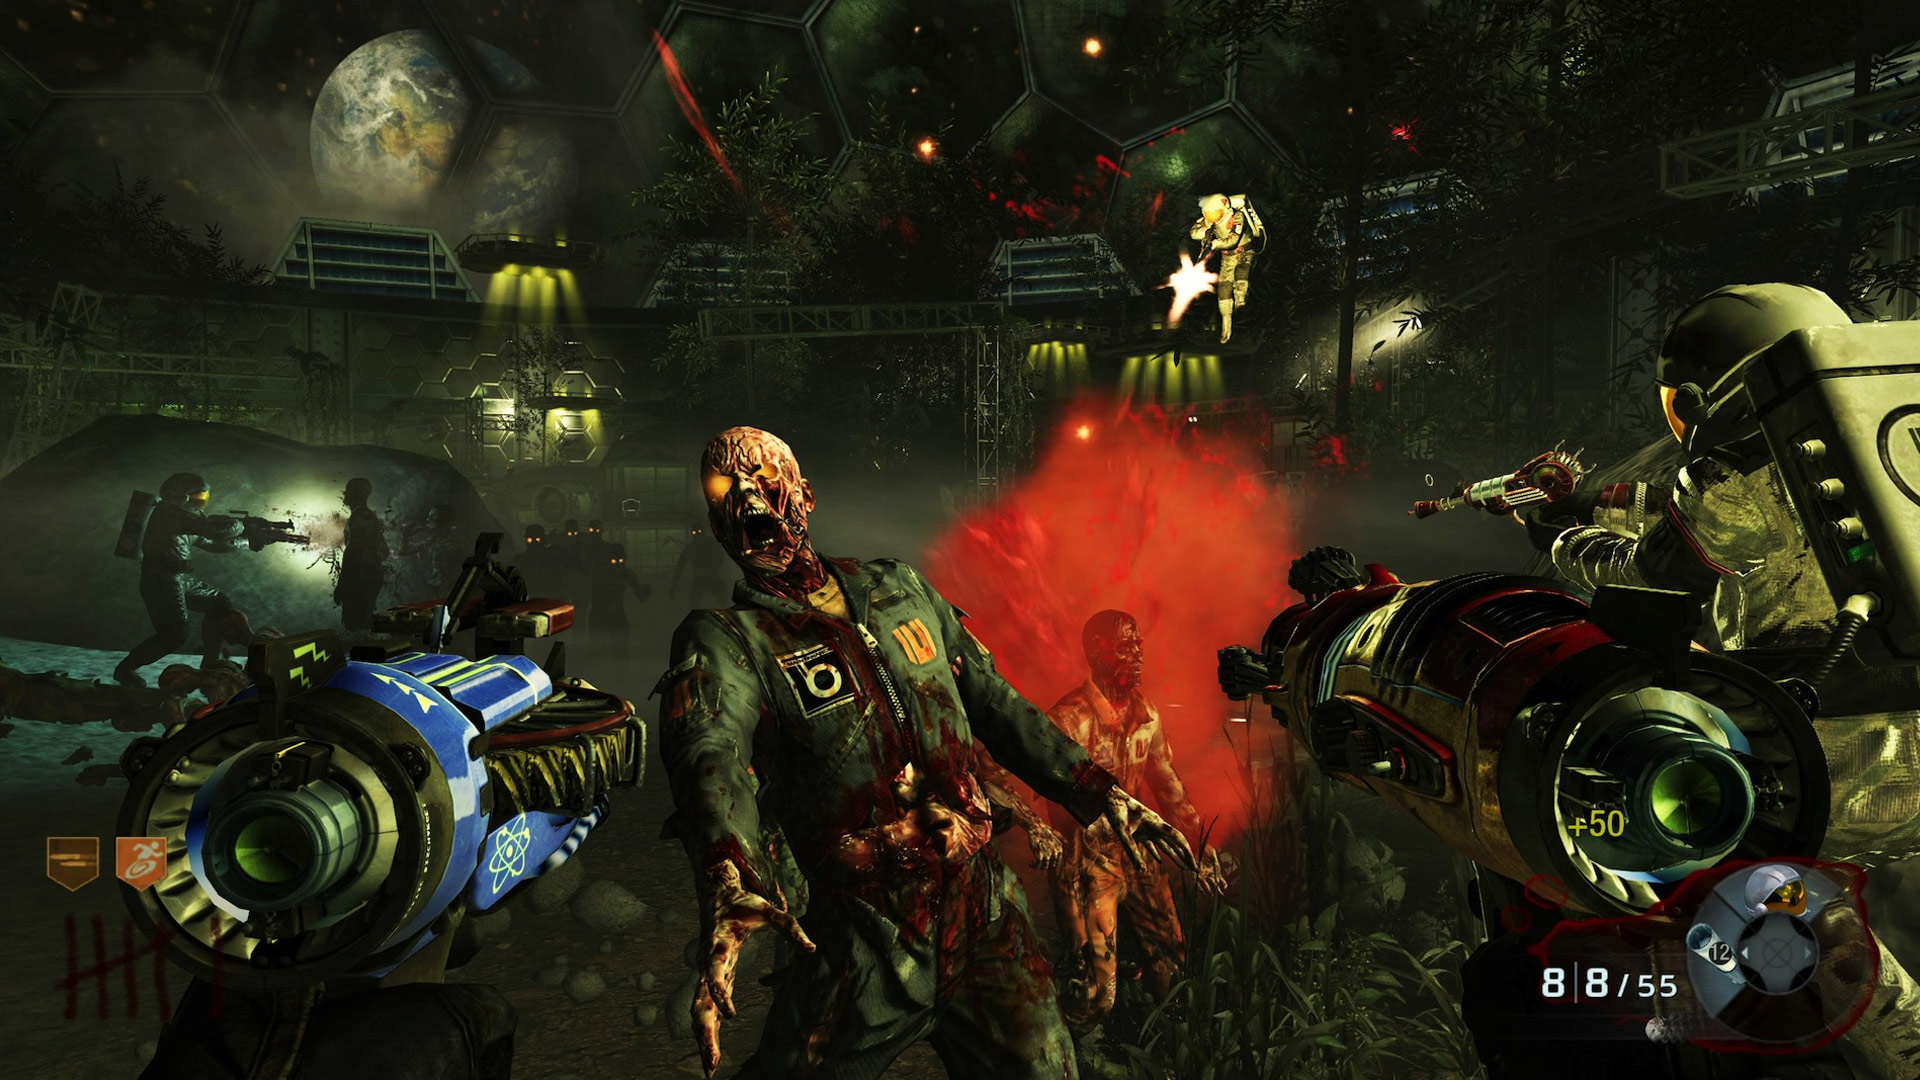 call of duty zombies gameplay wallpaper 52276